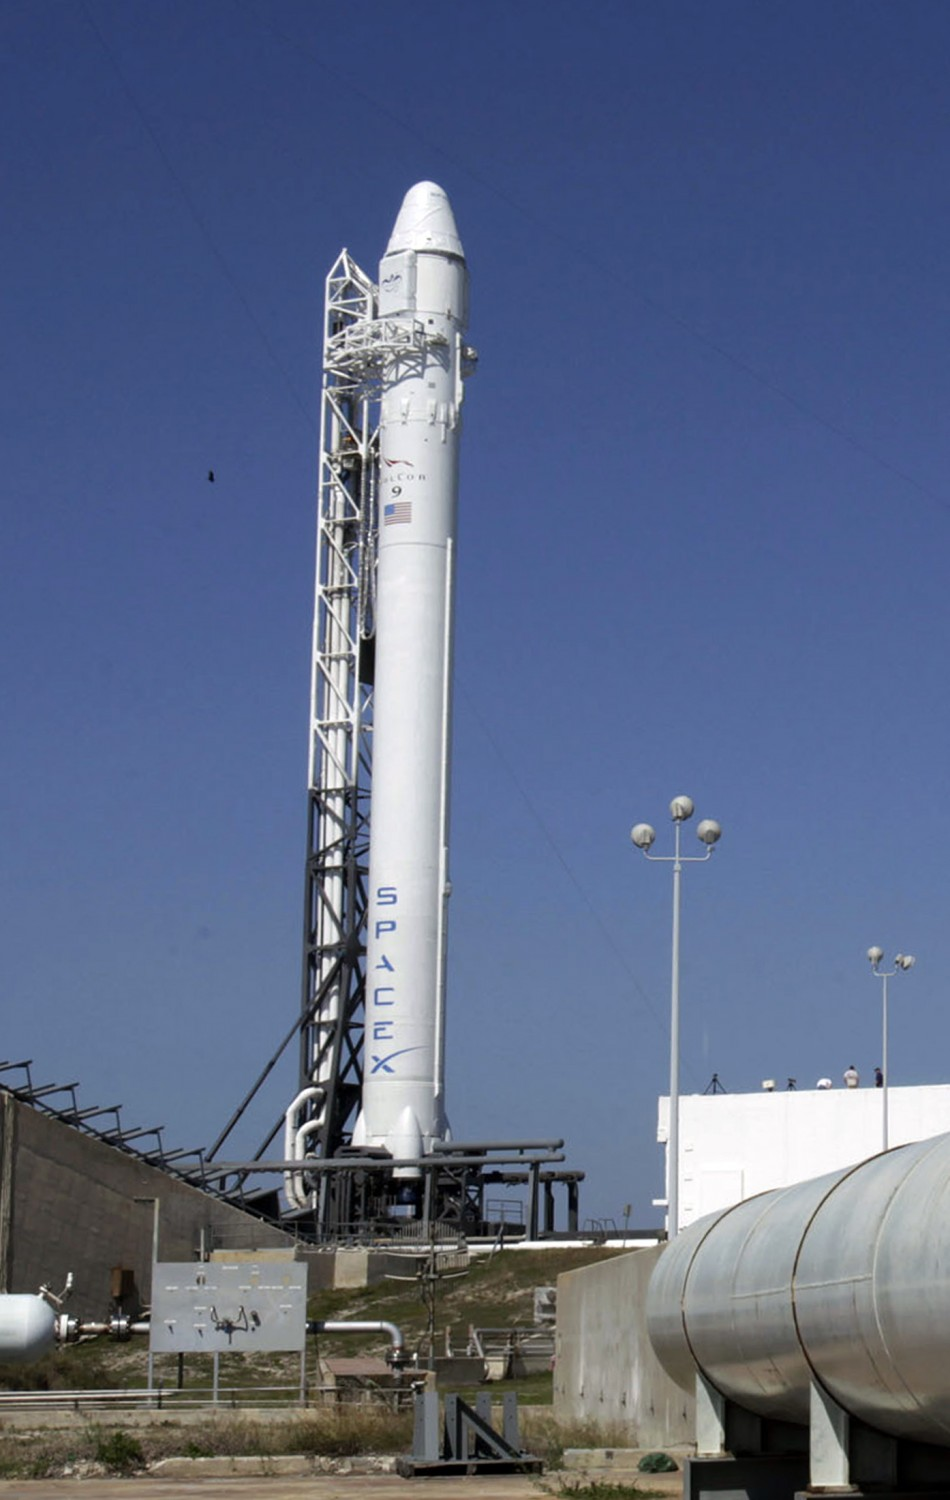 spacex launch date - photo #22